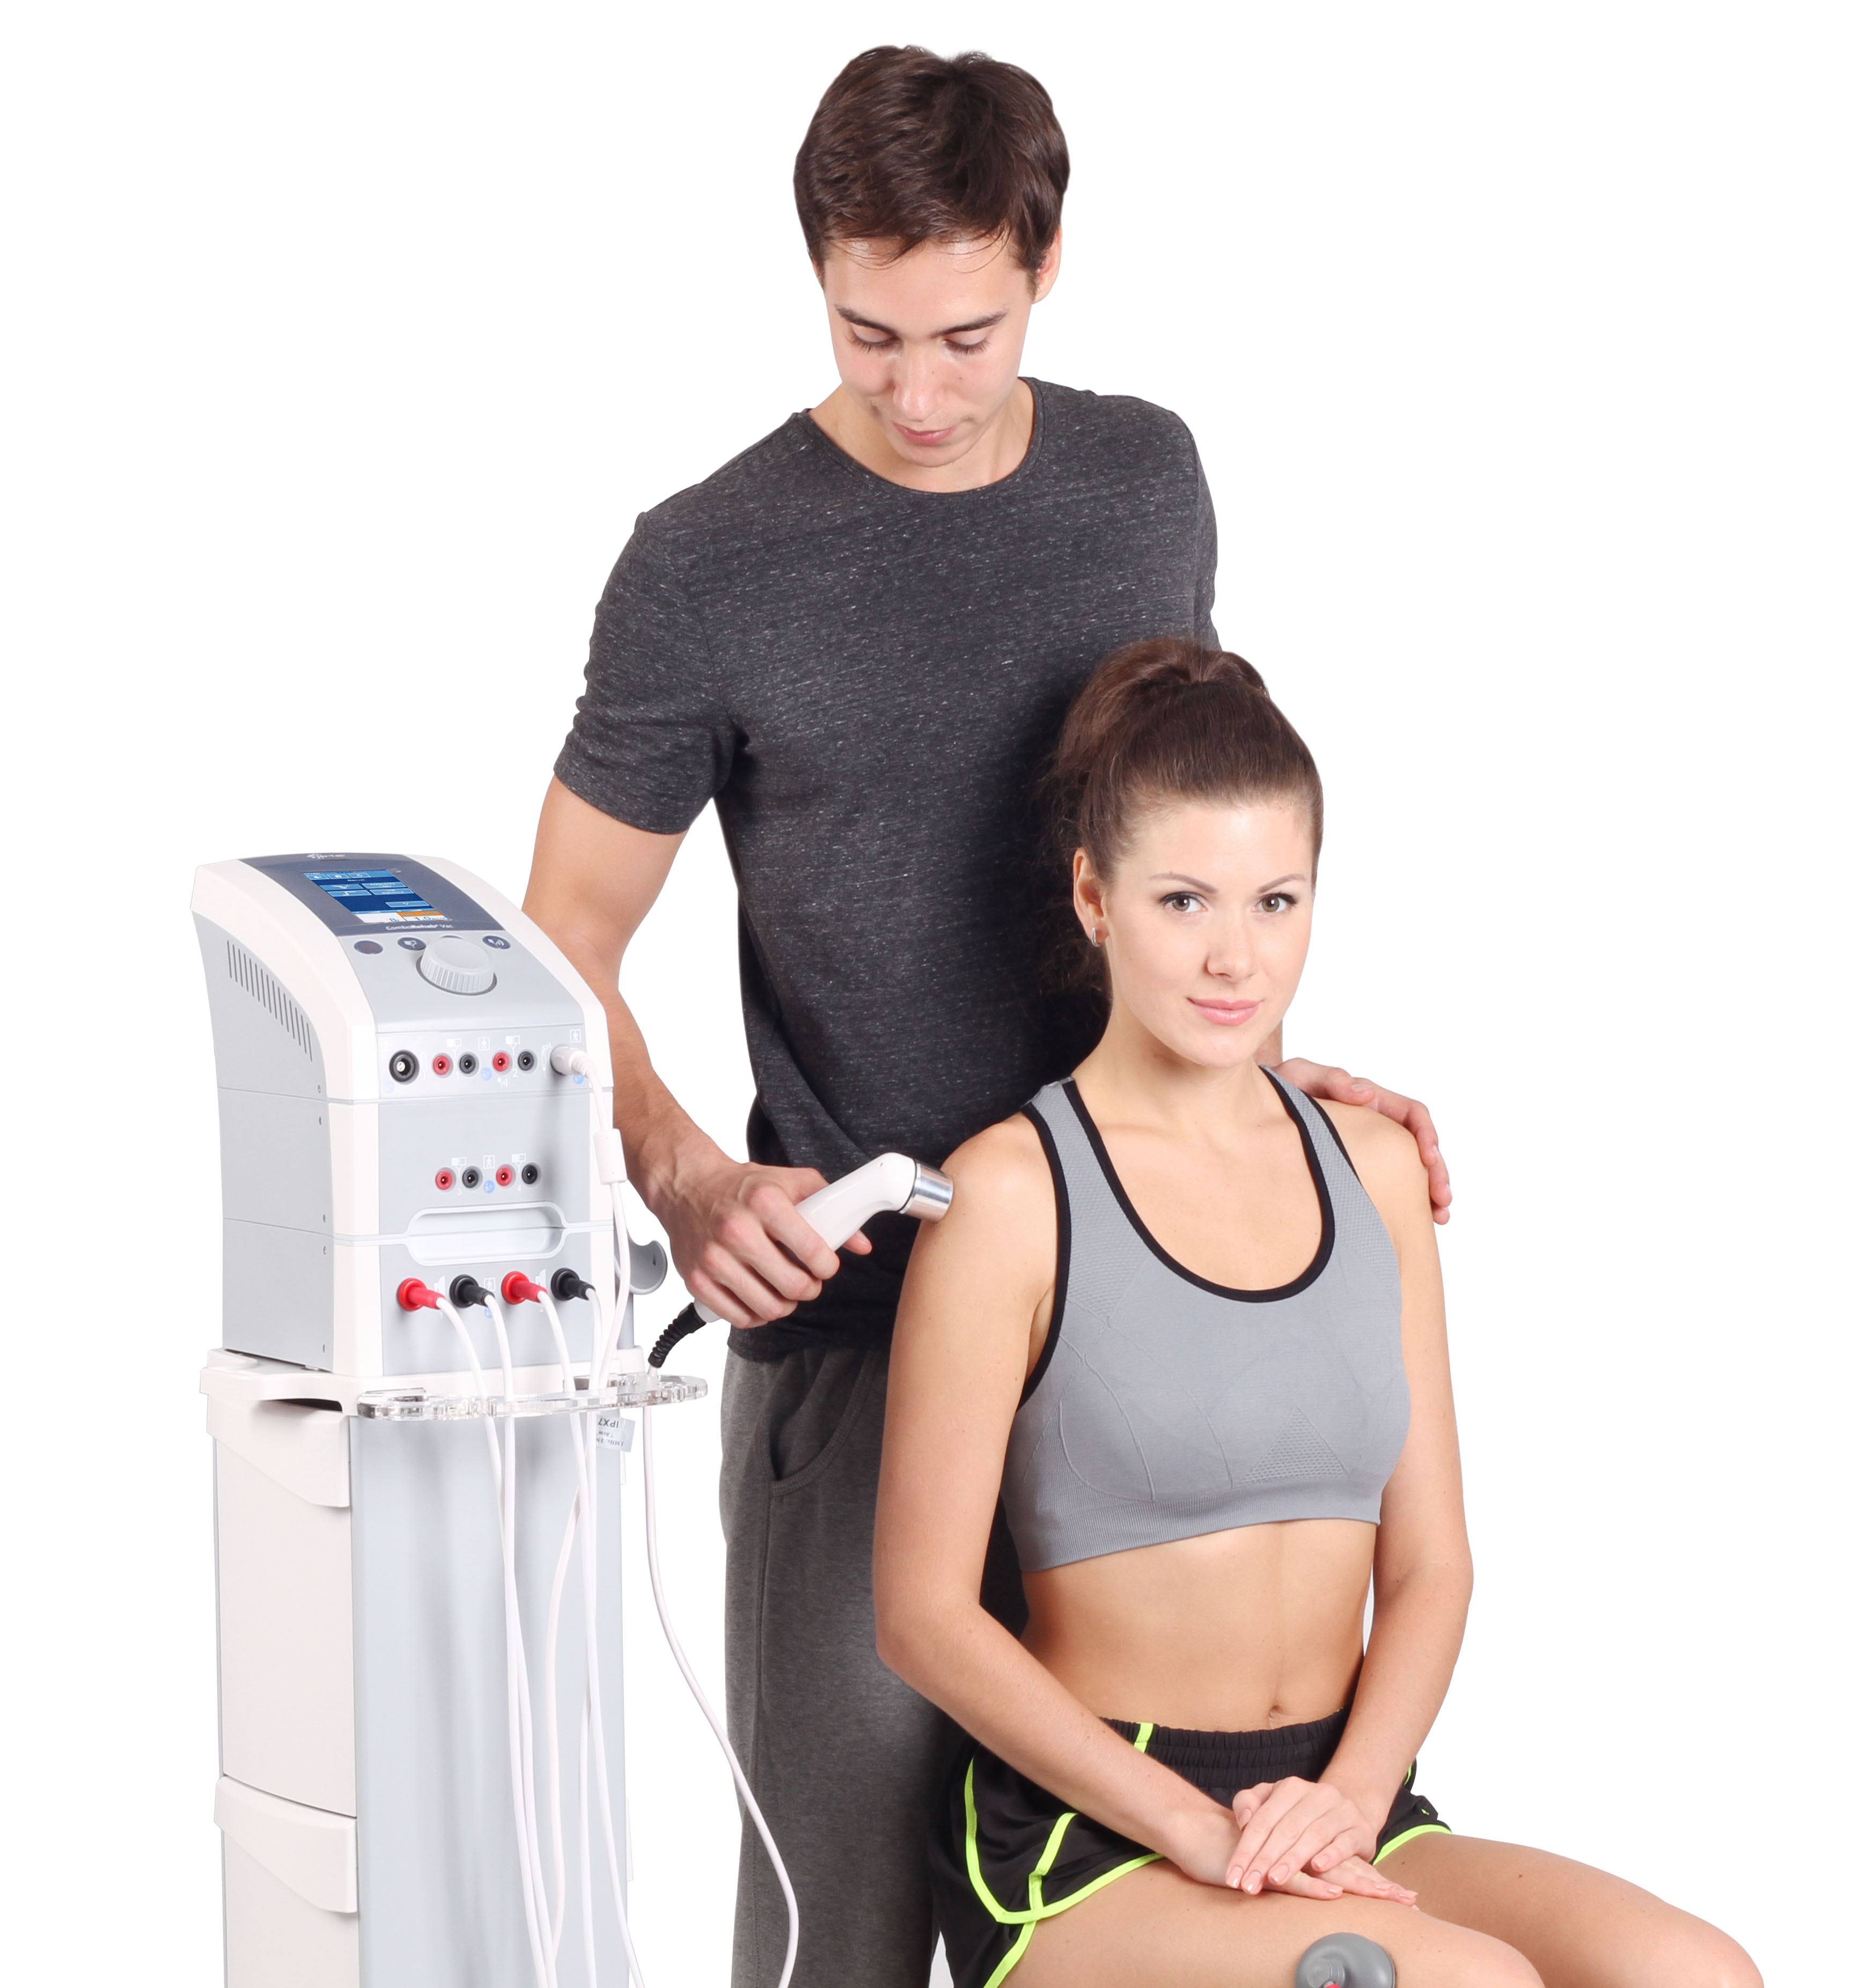 Physiotherapy - Physiotherapy Equipment Online